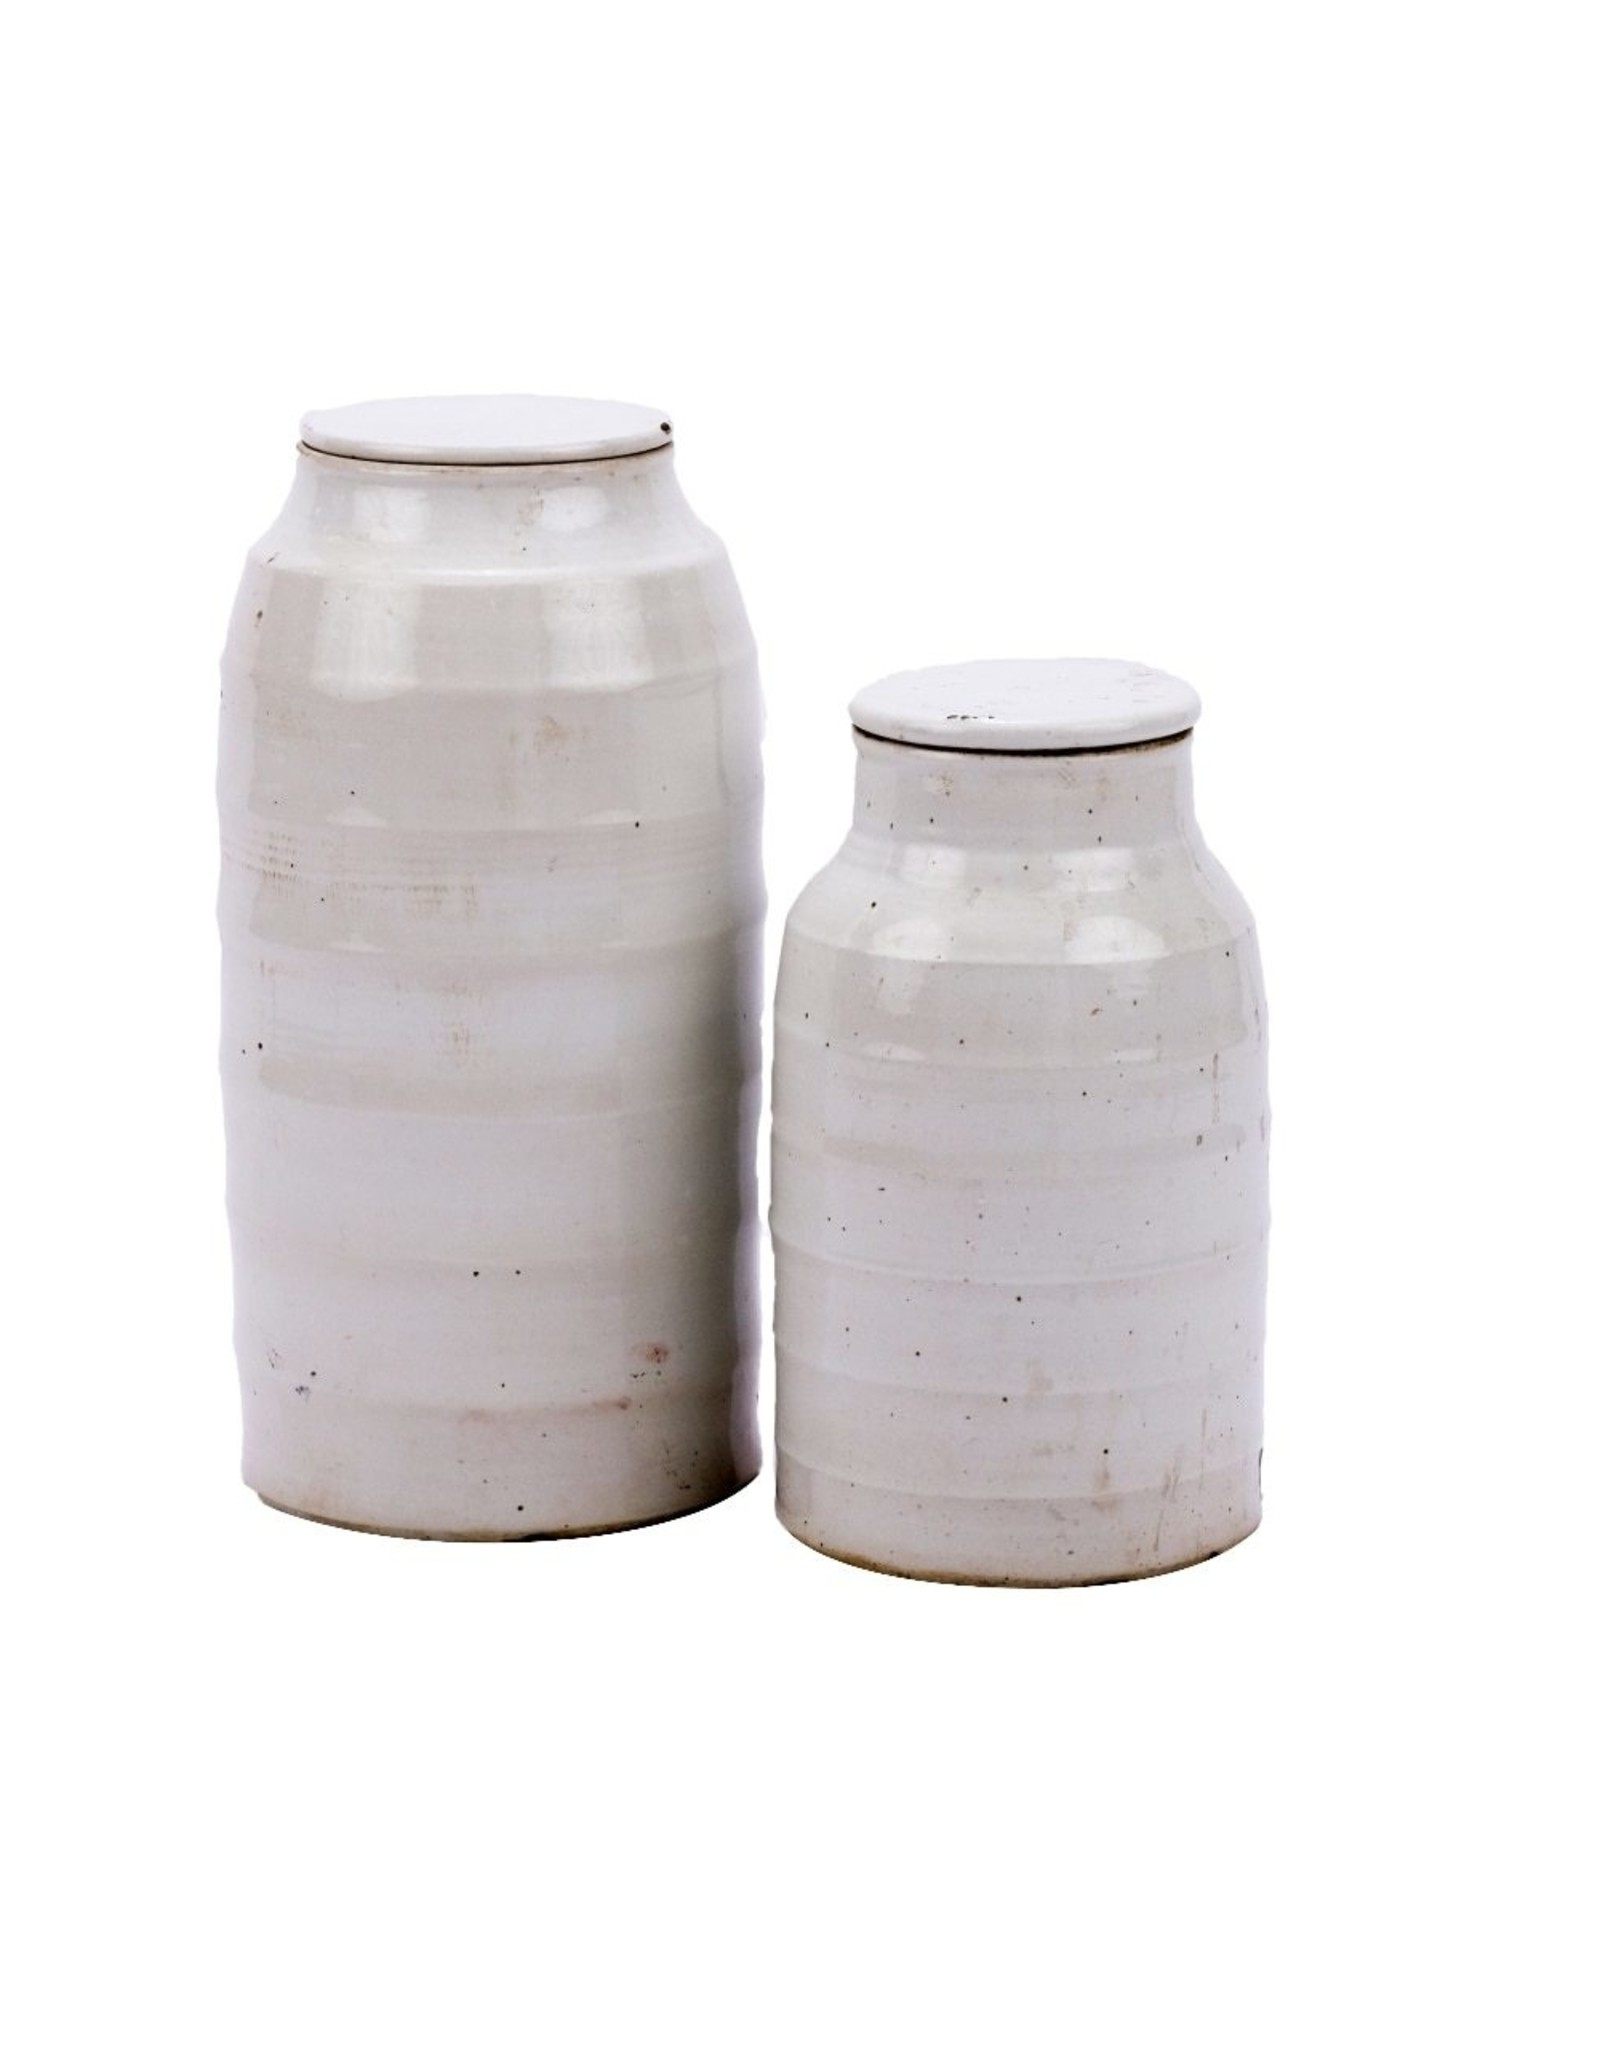 Busan White Flat Lidded Jar ShortW: 8.5 D: 8.5 H: 16